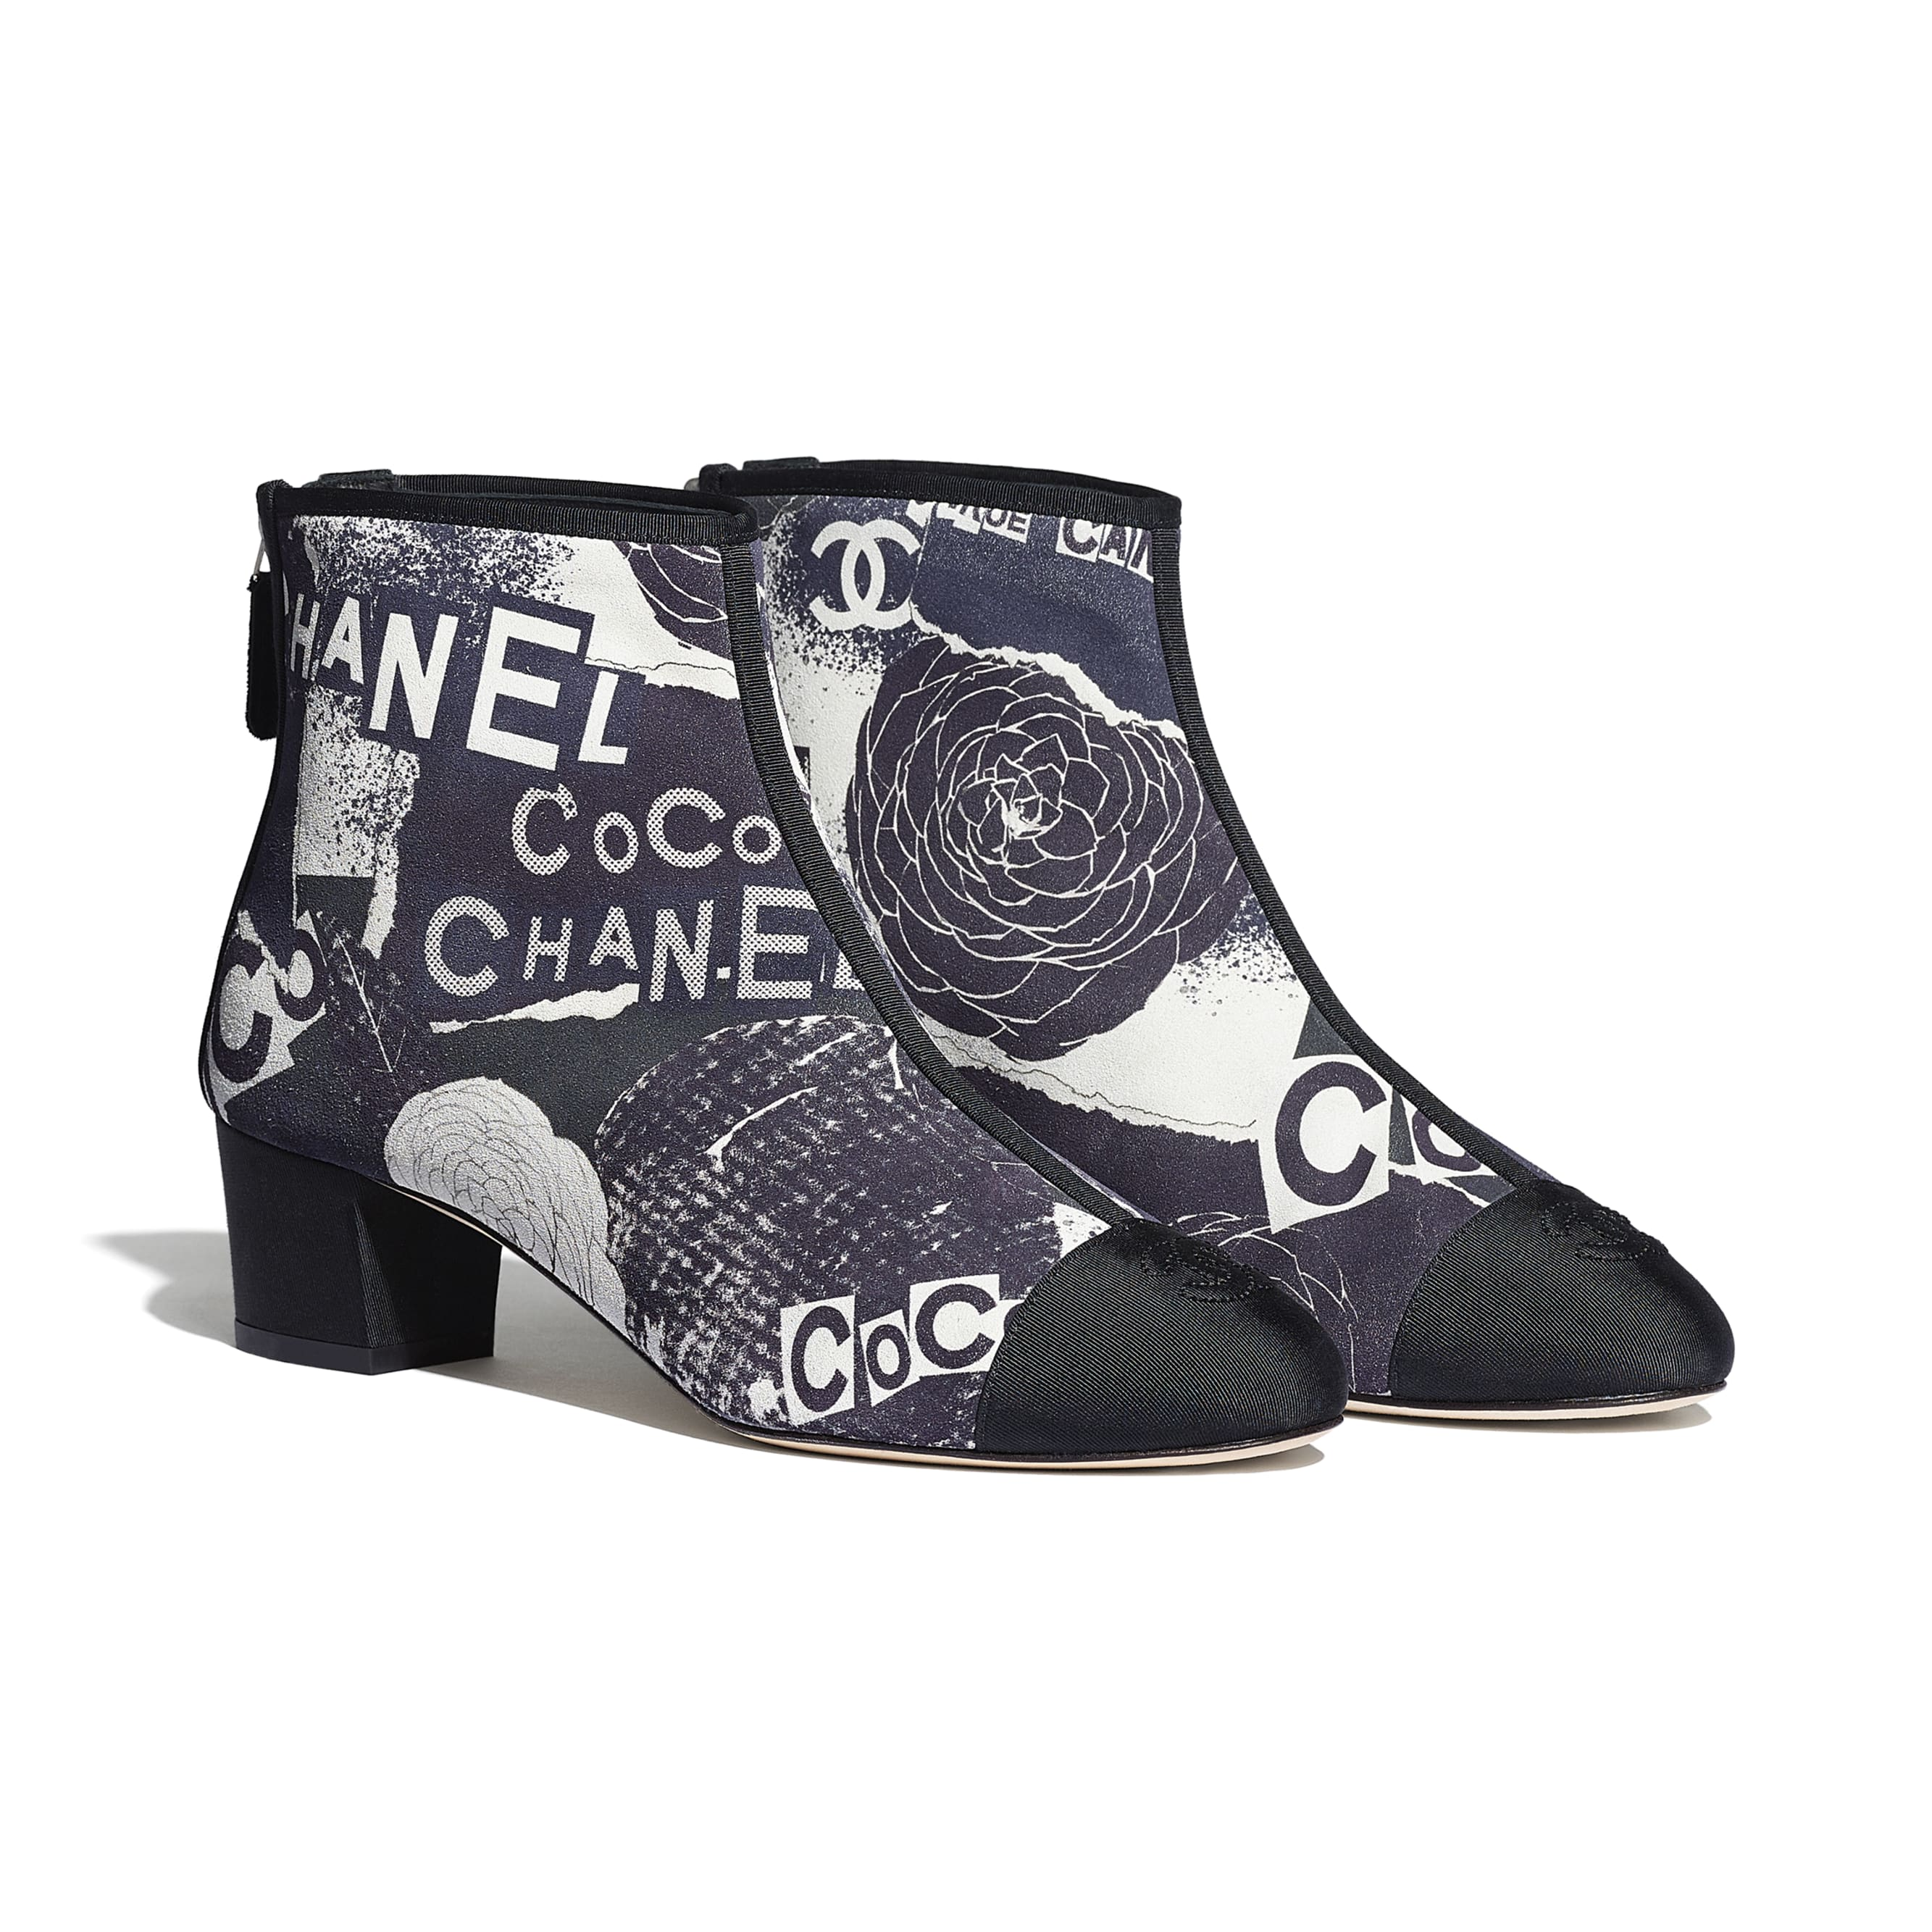 Ankle Boots - Navy Blue, White & Silver - Printed Calfskin & Grosgrain - CHANEL - Alternative view - see standard sized version